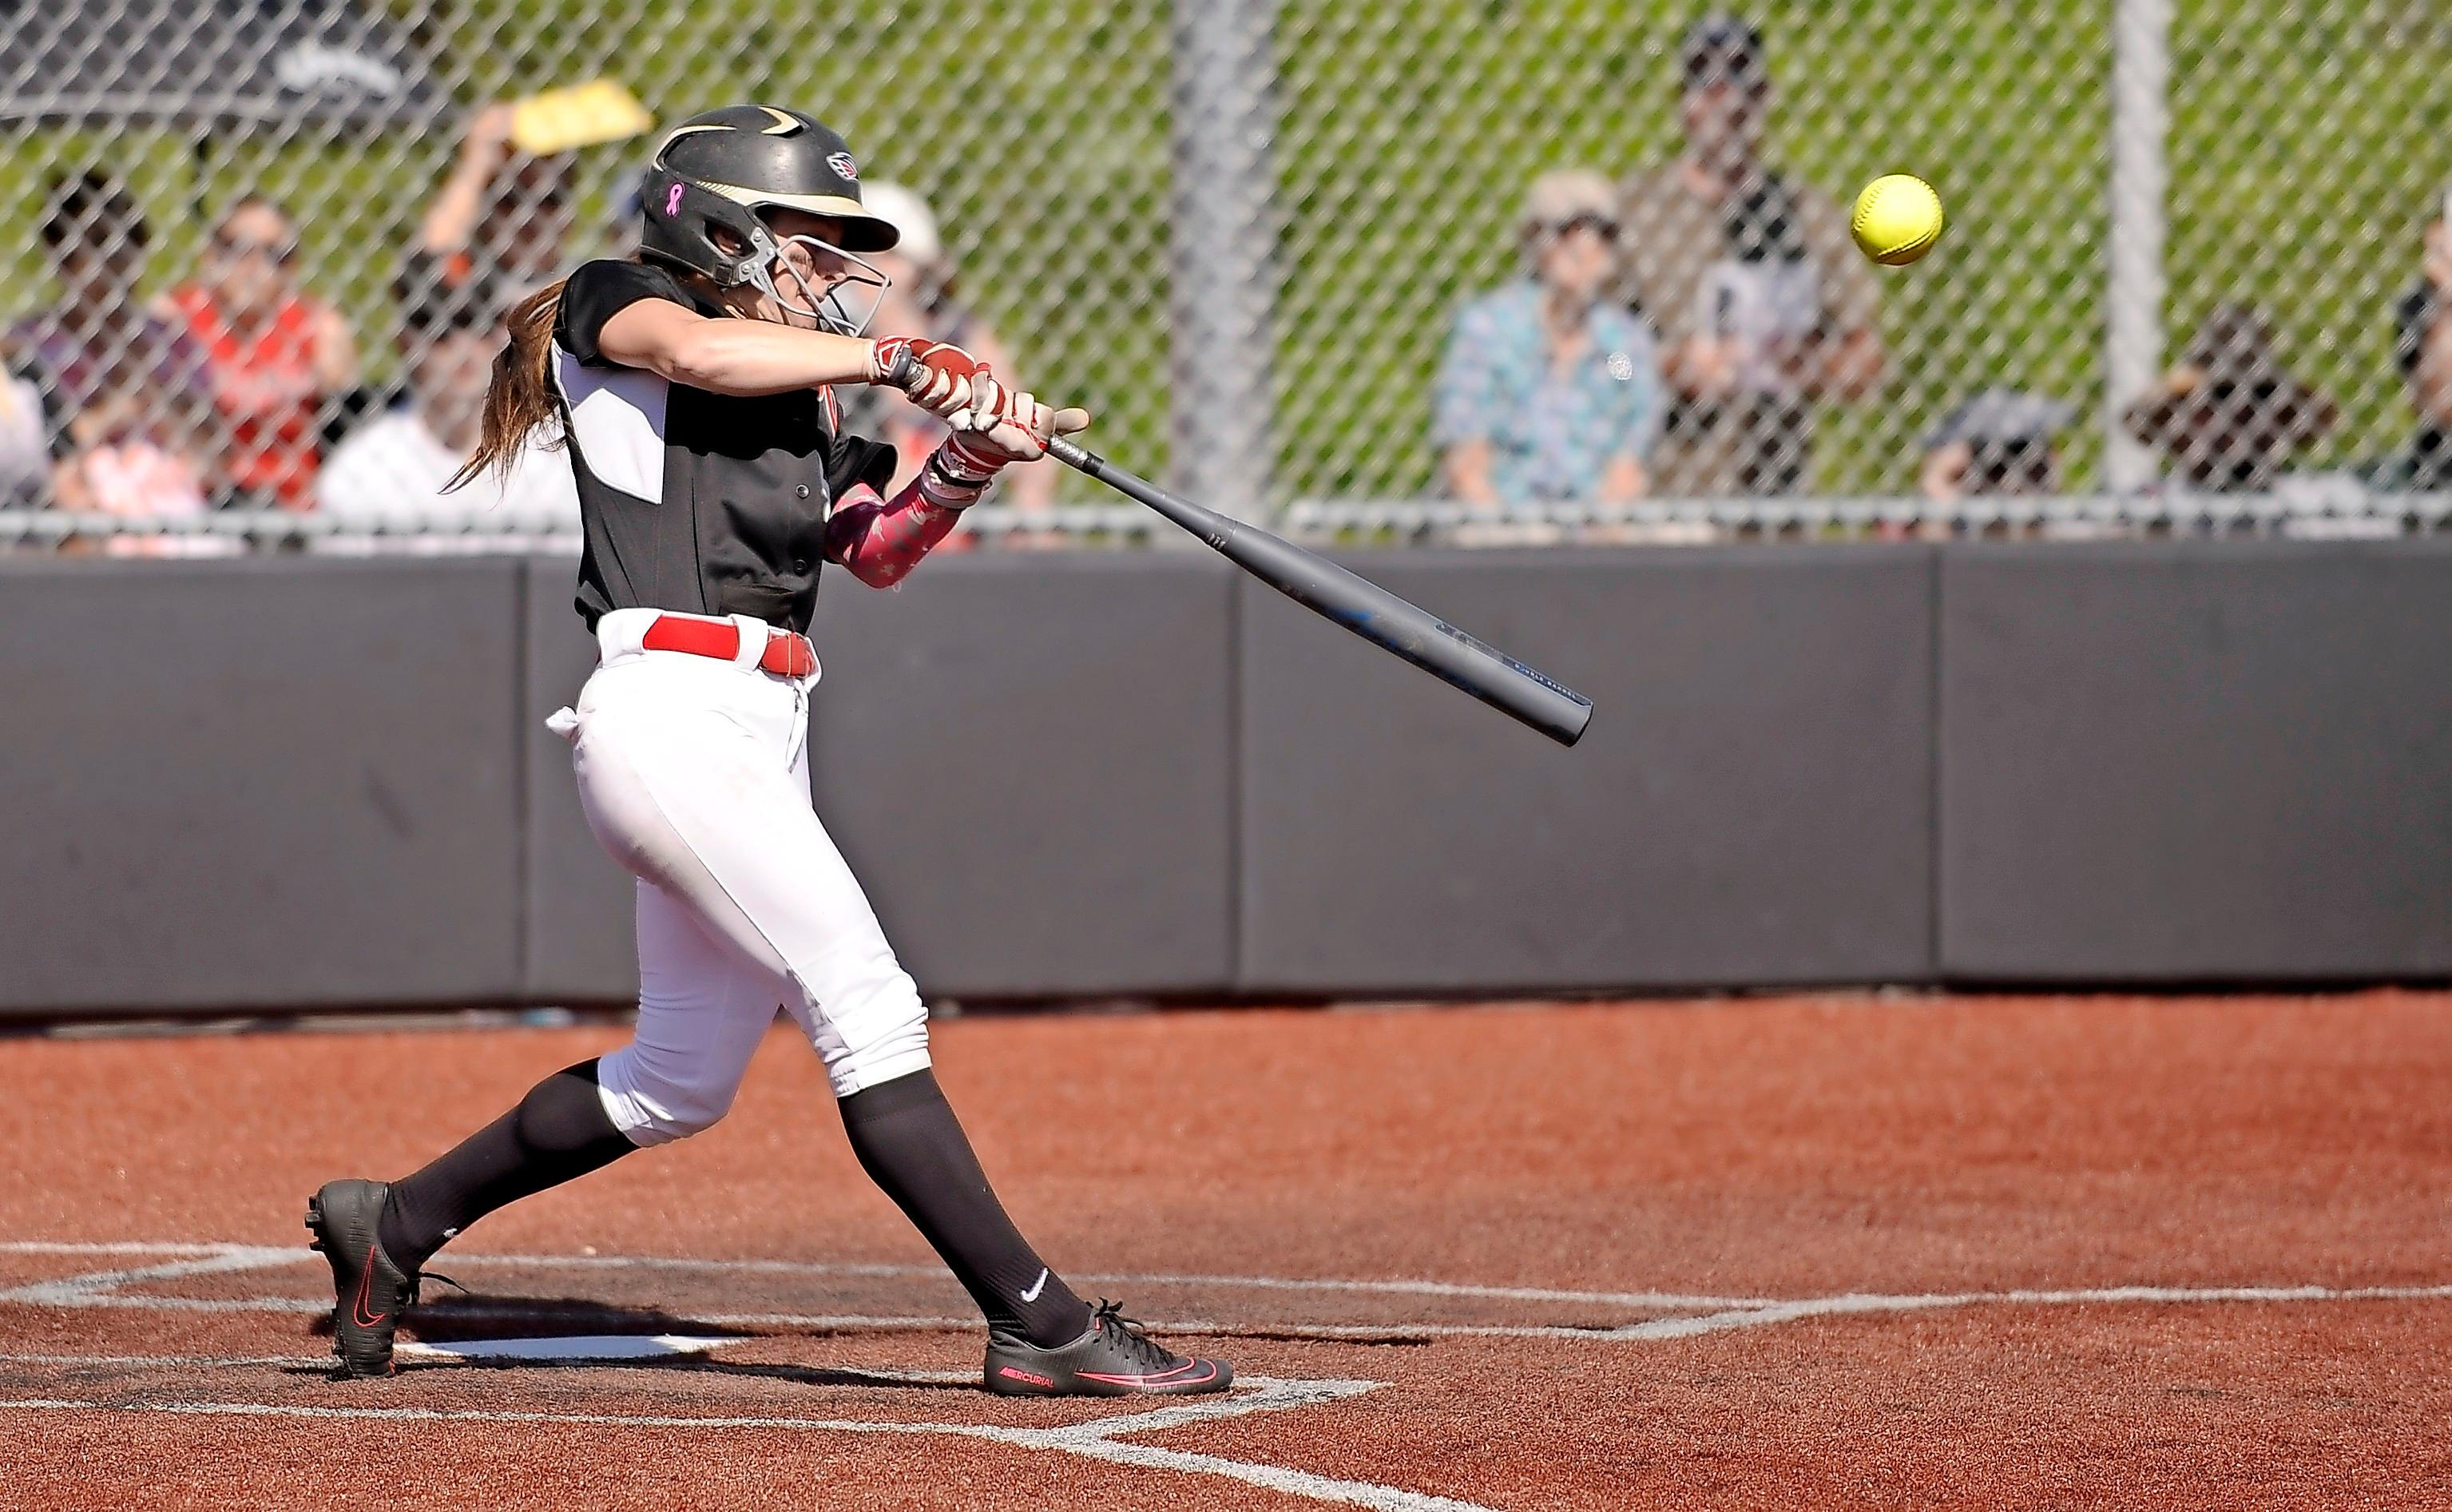 Andy Atkinson/Daily TidingsSouthern Oregon University shortstop Kelsey Randall connects for a triple to lead off the bottom of the fifth inning against Northwestern College on Tuesday. Randall scored moments later on Hannah Shimek's RBI single to center field.